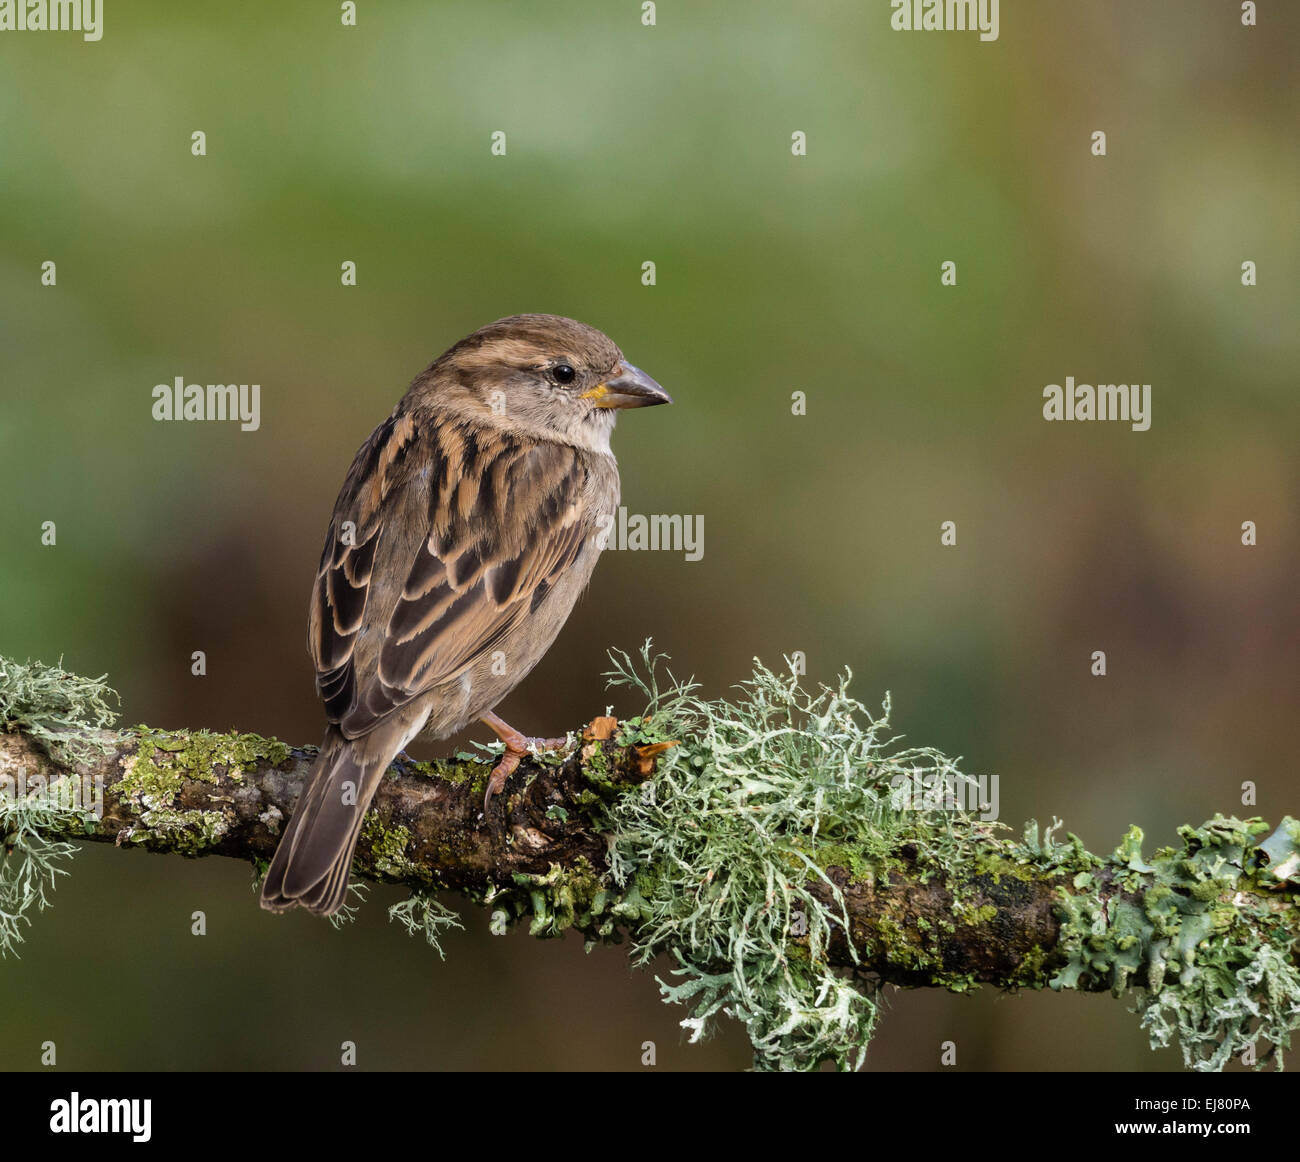 House Sparrow (Passer domesticus), female, perched on branch, Dorset, England, UK. - Stock Image